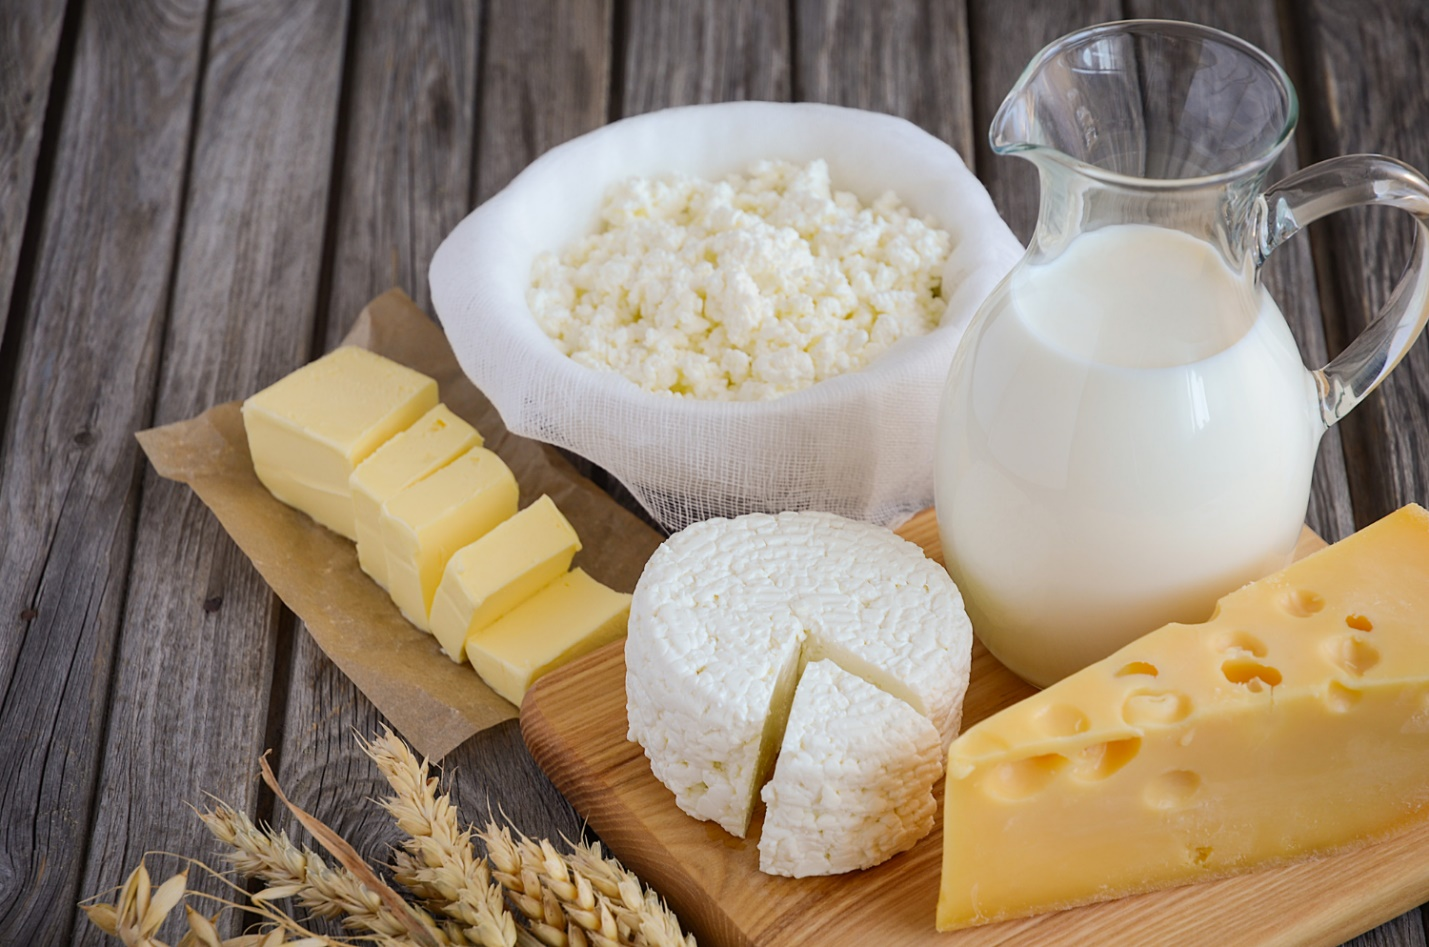 C:\Users\Dell\Downloads\fresh-dairy-products-milk-cheese-butter-cottage-cheese-with-wheat-rustic-wooden-background.jpg